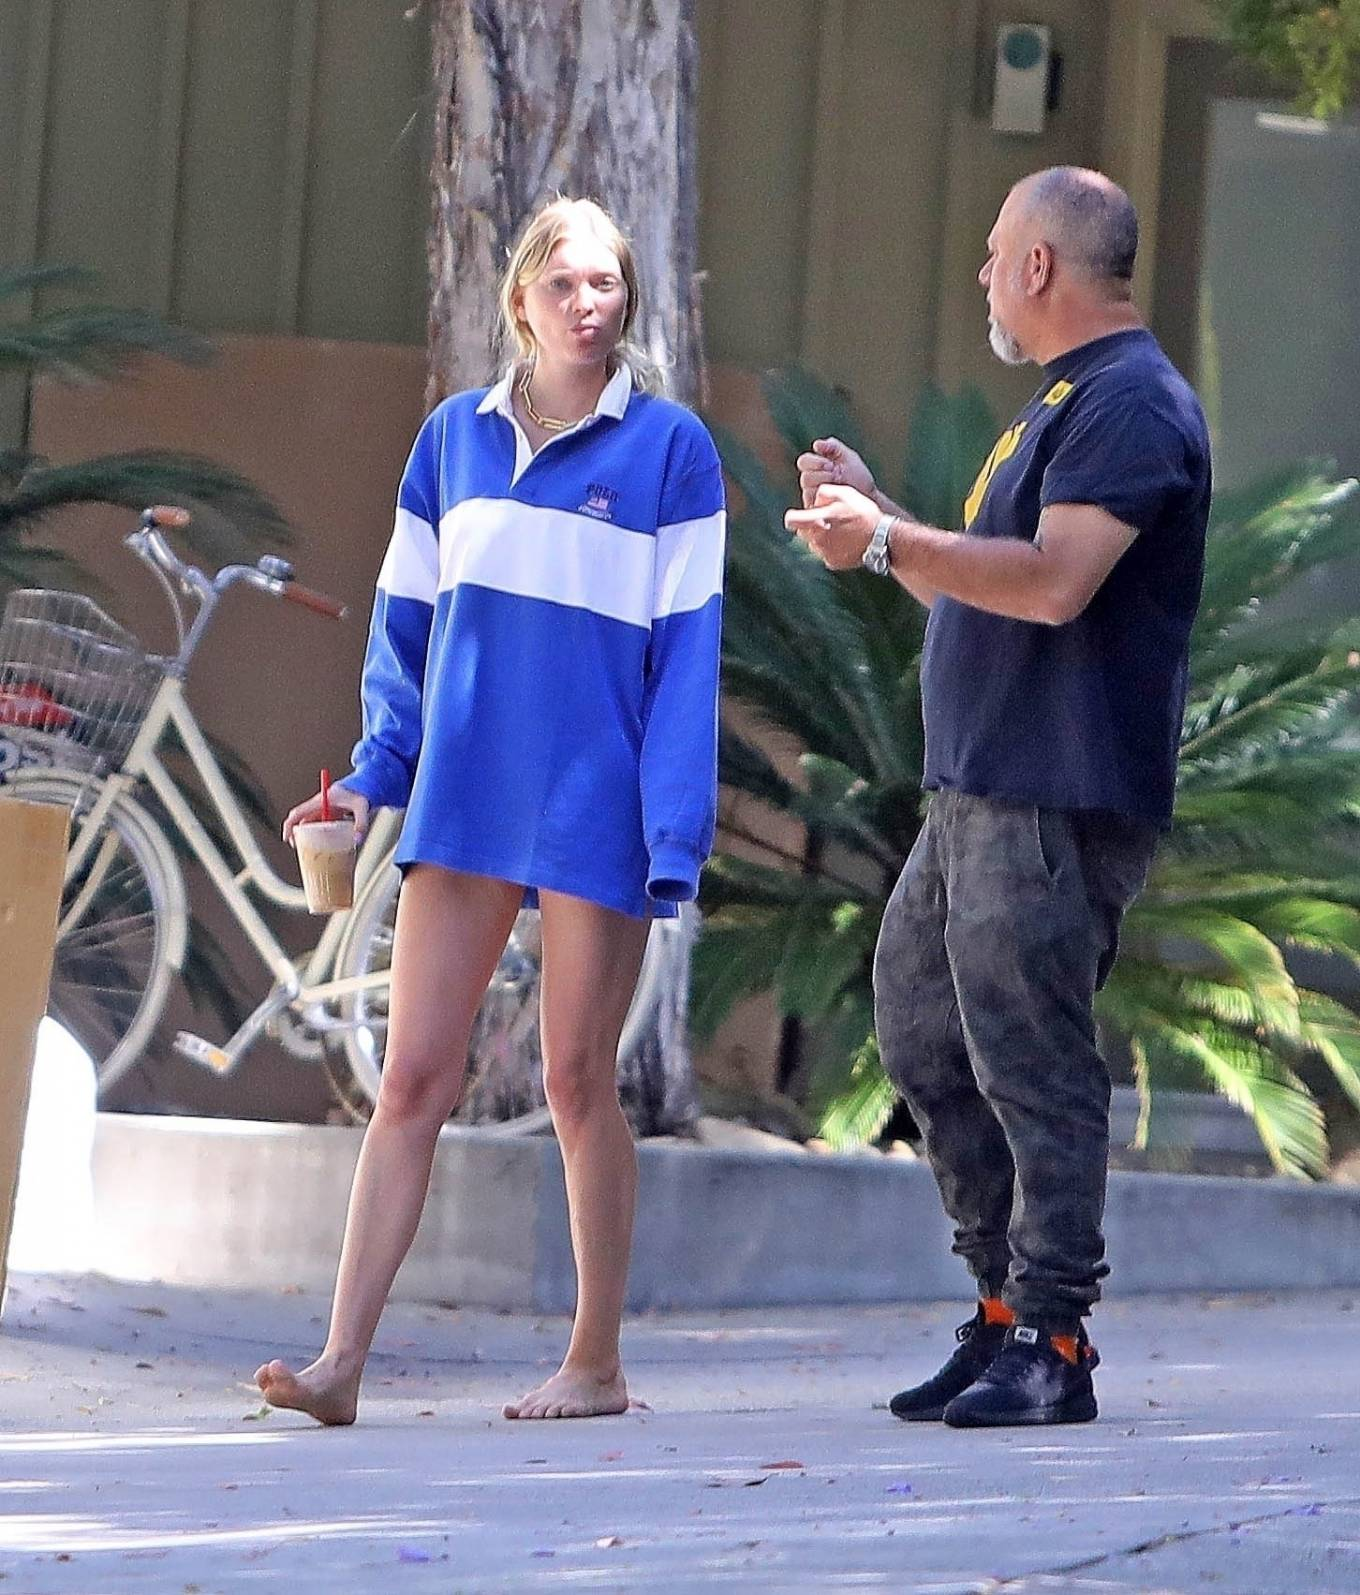 Elsa Hosk, oversized, white and blue sweatshirt, hip length, extra long sleeves, shirt collar, comfortable, long legs, color block, white and blue jumper, loungewear, slouchy. Elsa Hosk wearing a oversized white and blue sweatshirt with extra long sleeves and shirt collar